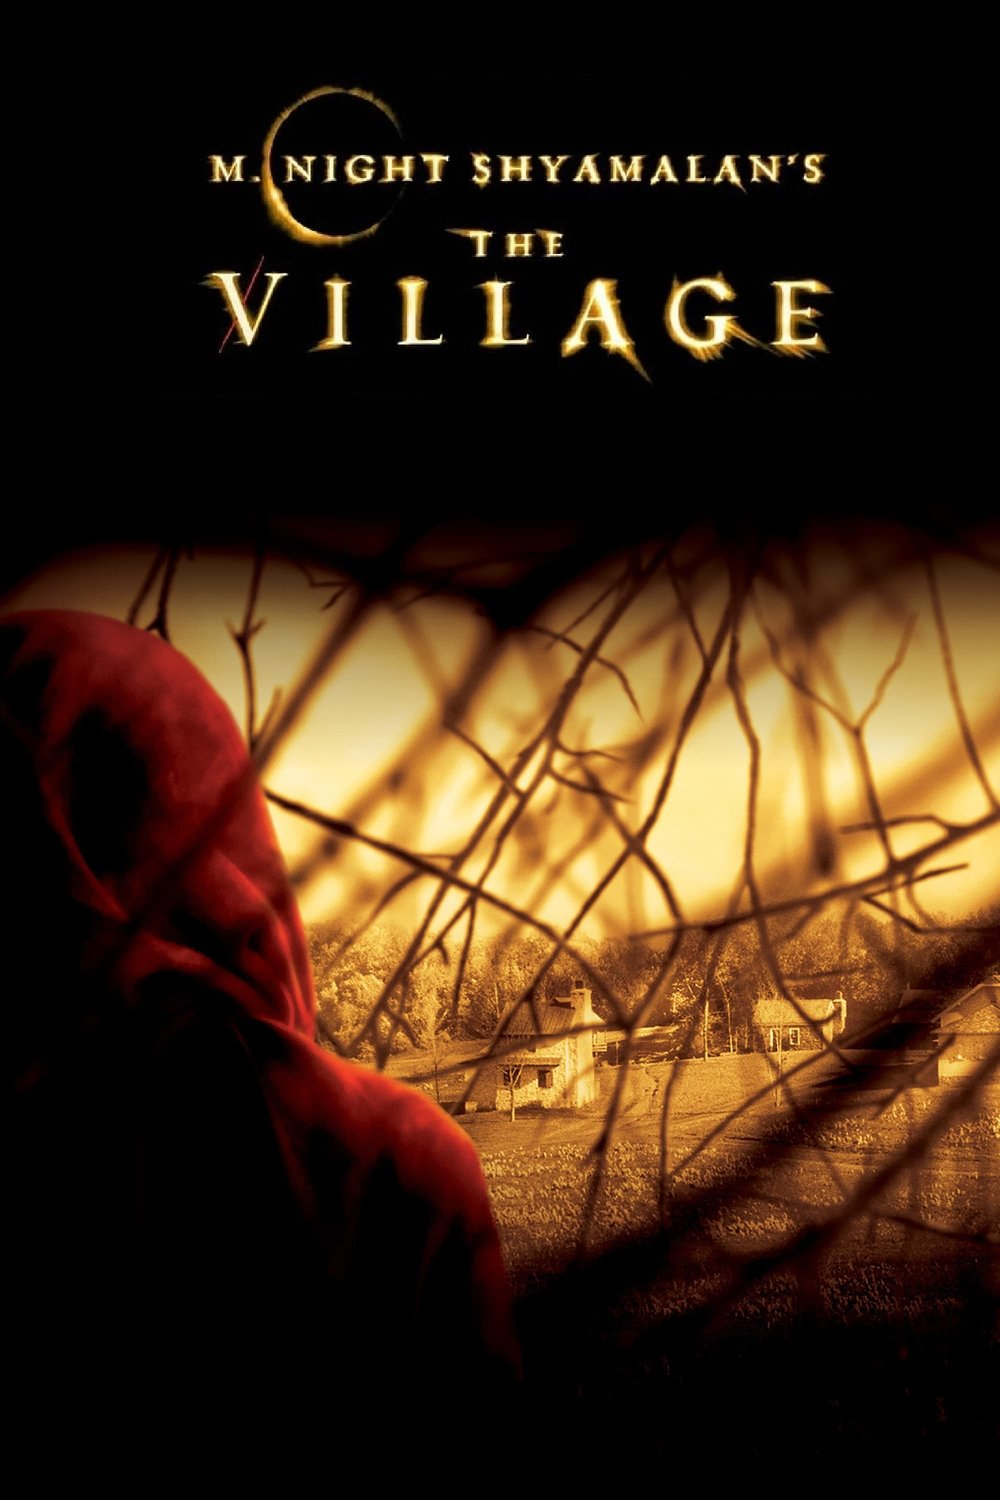 The Village (2004) - Directed by: M. Night ShyamalanStarring: Bryce Dallas Howard, Joaquin Pheonix, William Hurt, Adrien BrodyRated: PG-13 for a Scene of Violence and Frightening SituationsRunning Time: 1 h 48 mTMM Score: 2.5 stars out of 5STRENGTHS: Cinematography, Score, Some ActingWEAKNESSES: Some Acting, Directing, Writing, Pacing